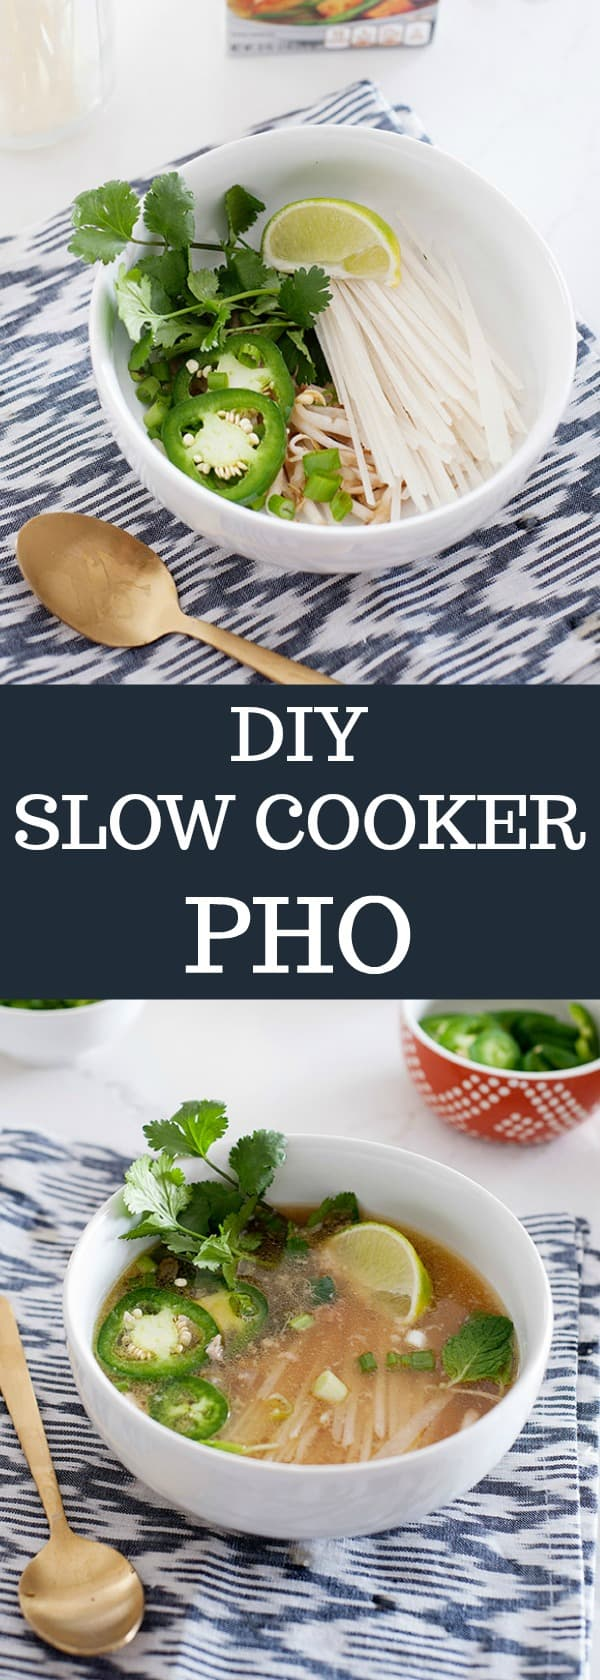 Easy and Kid friendly homemade slow cooker pho recipe for busy week nights